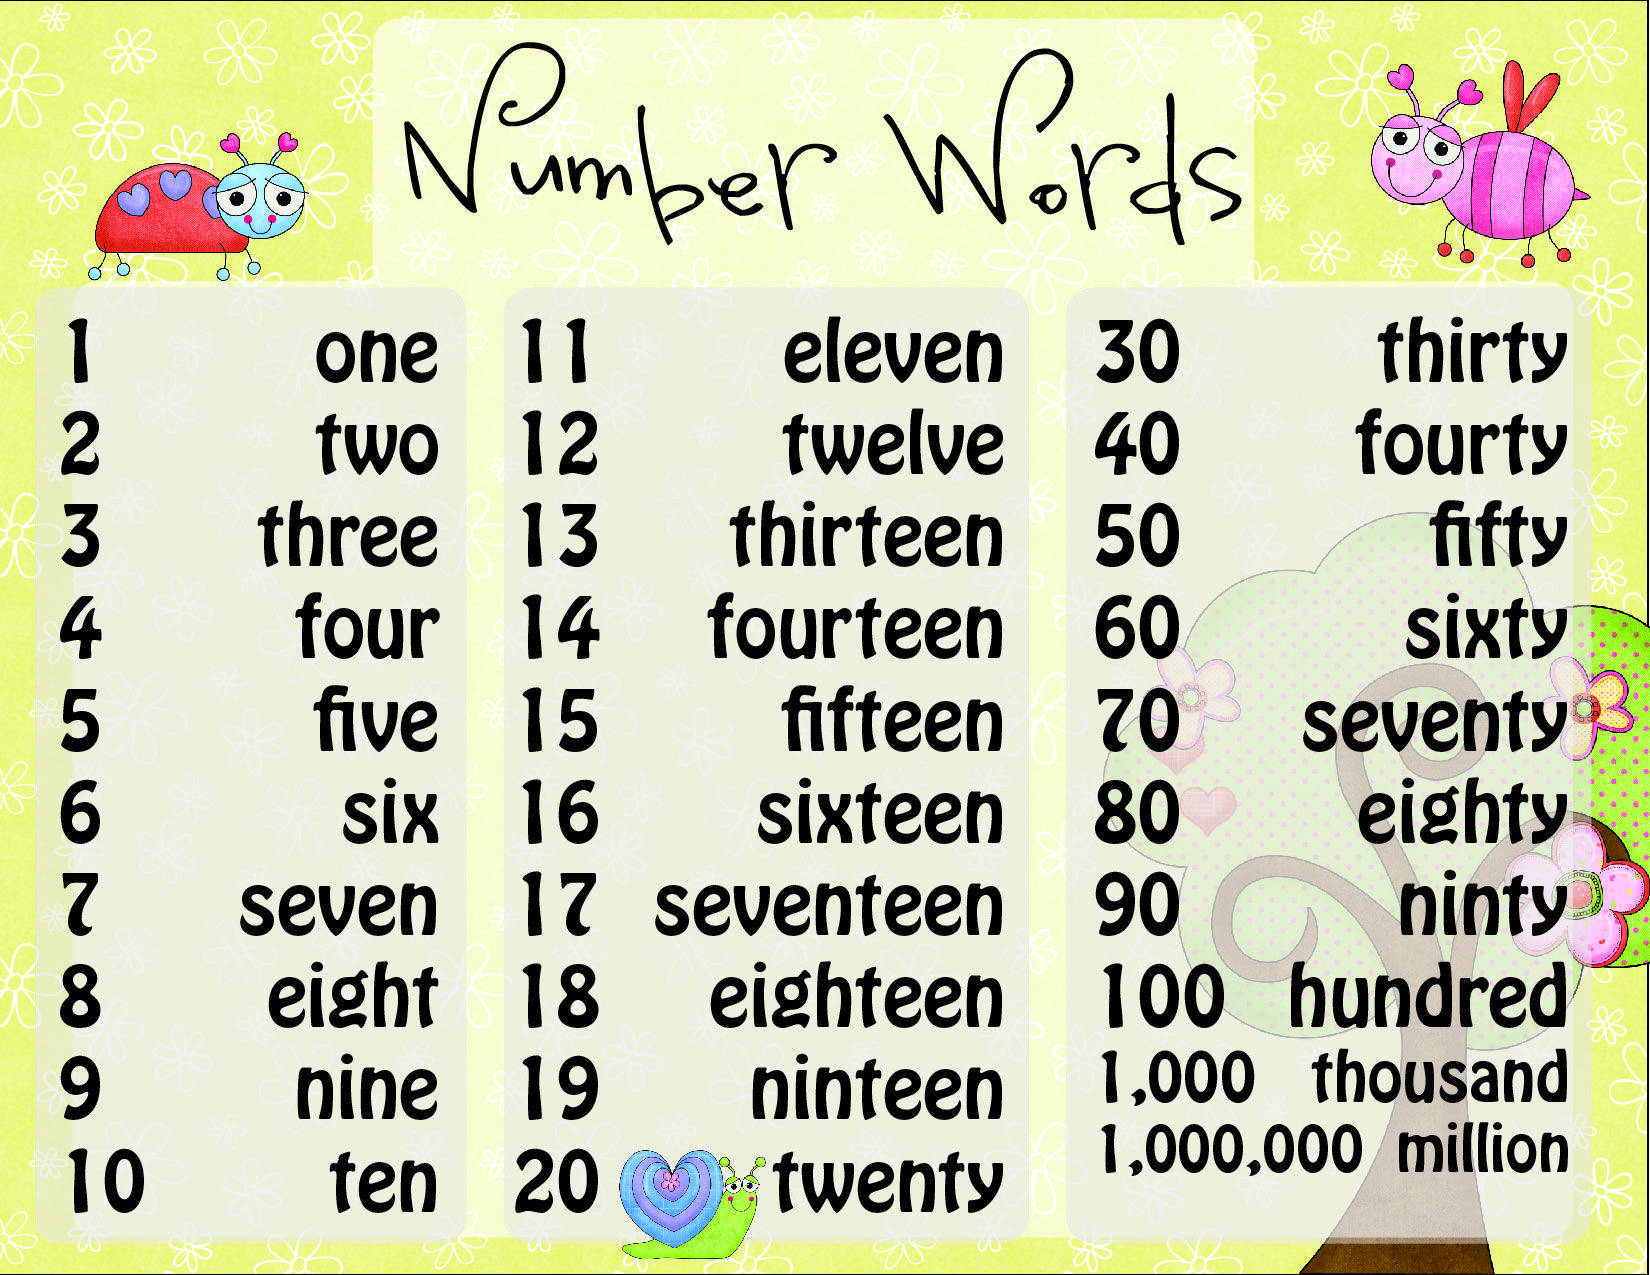 Worksheet Numbers In Words spell numbers bing images goforthehstyle pinterest images